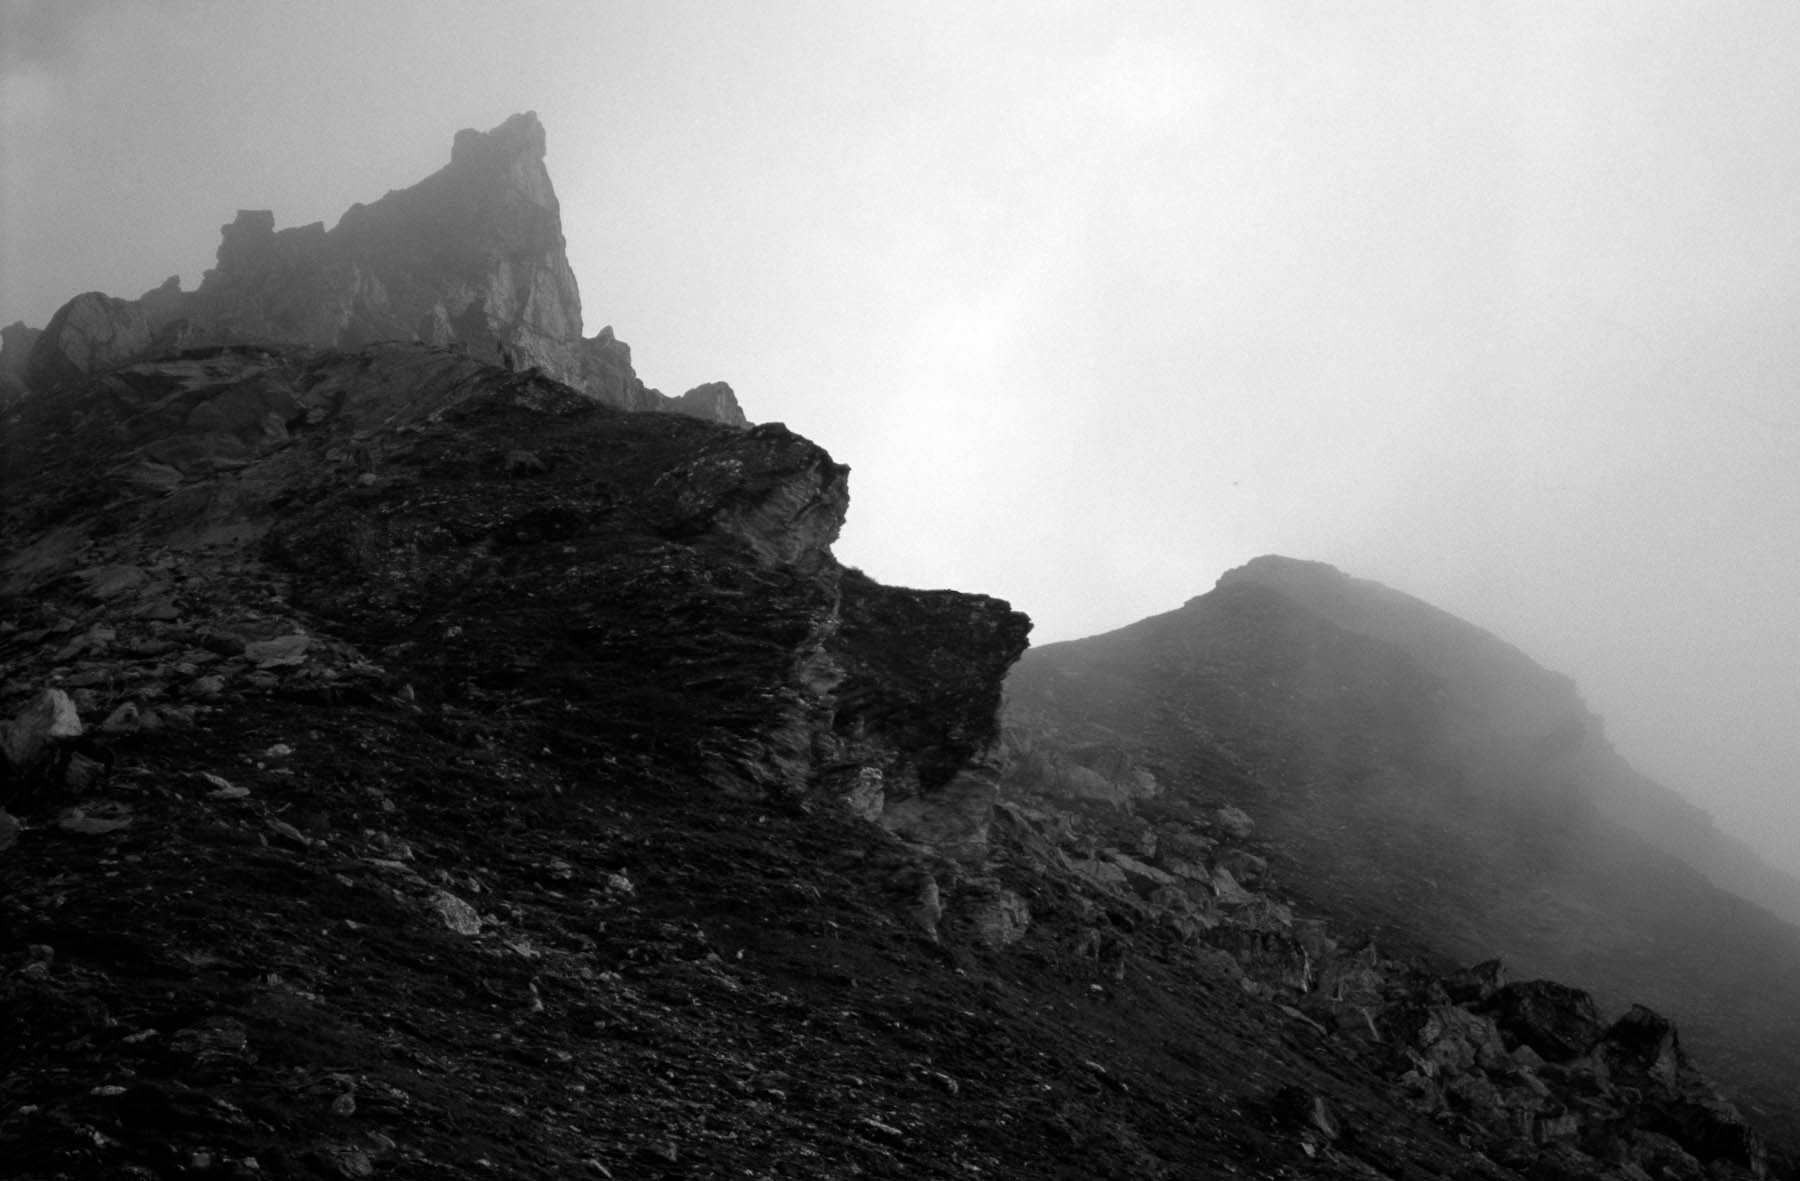 A peak shrouded in morning mist on the Haute Route